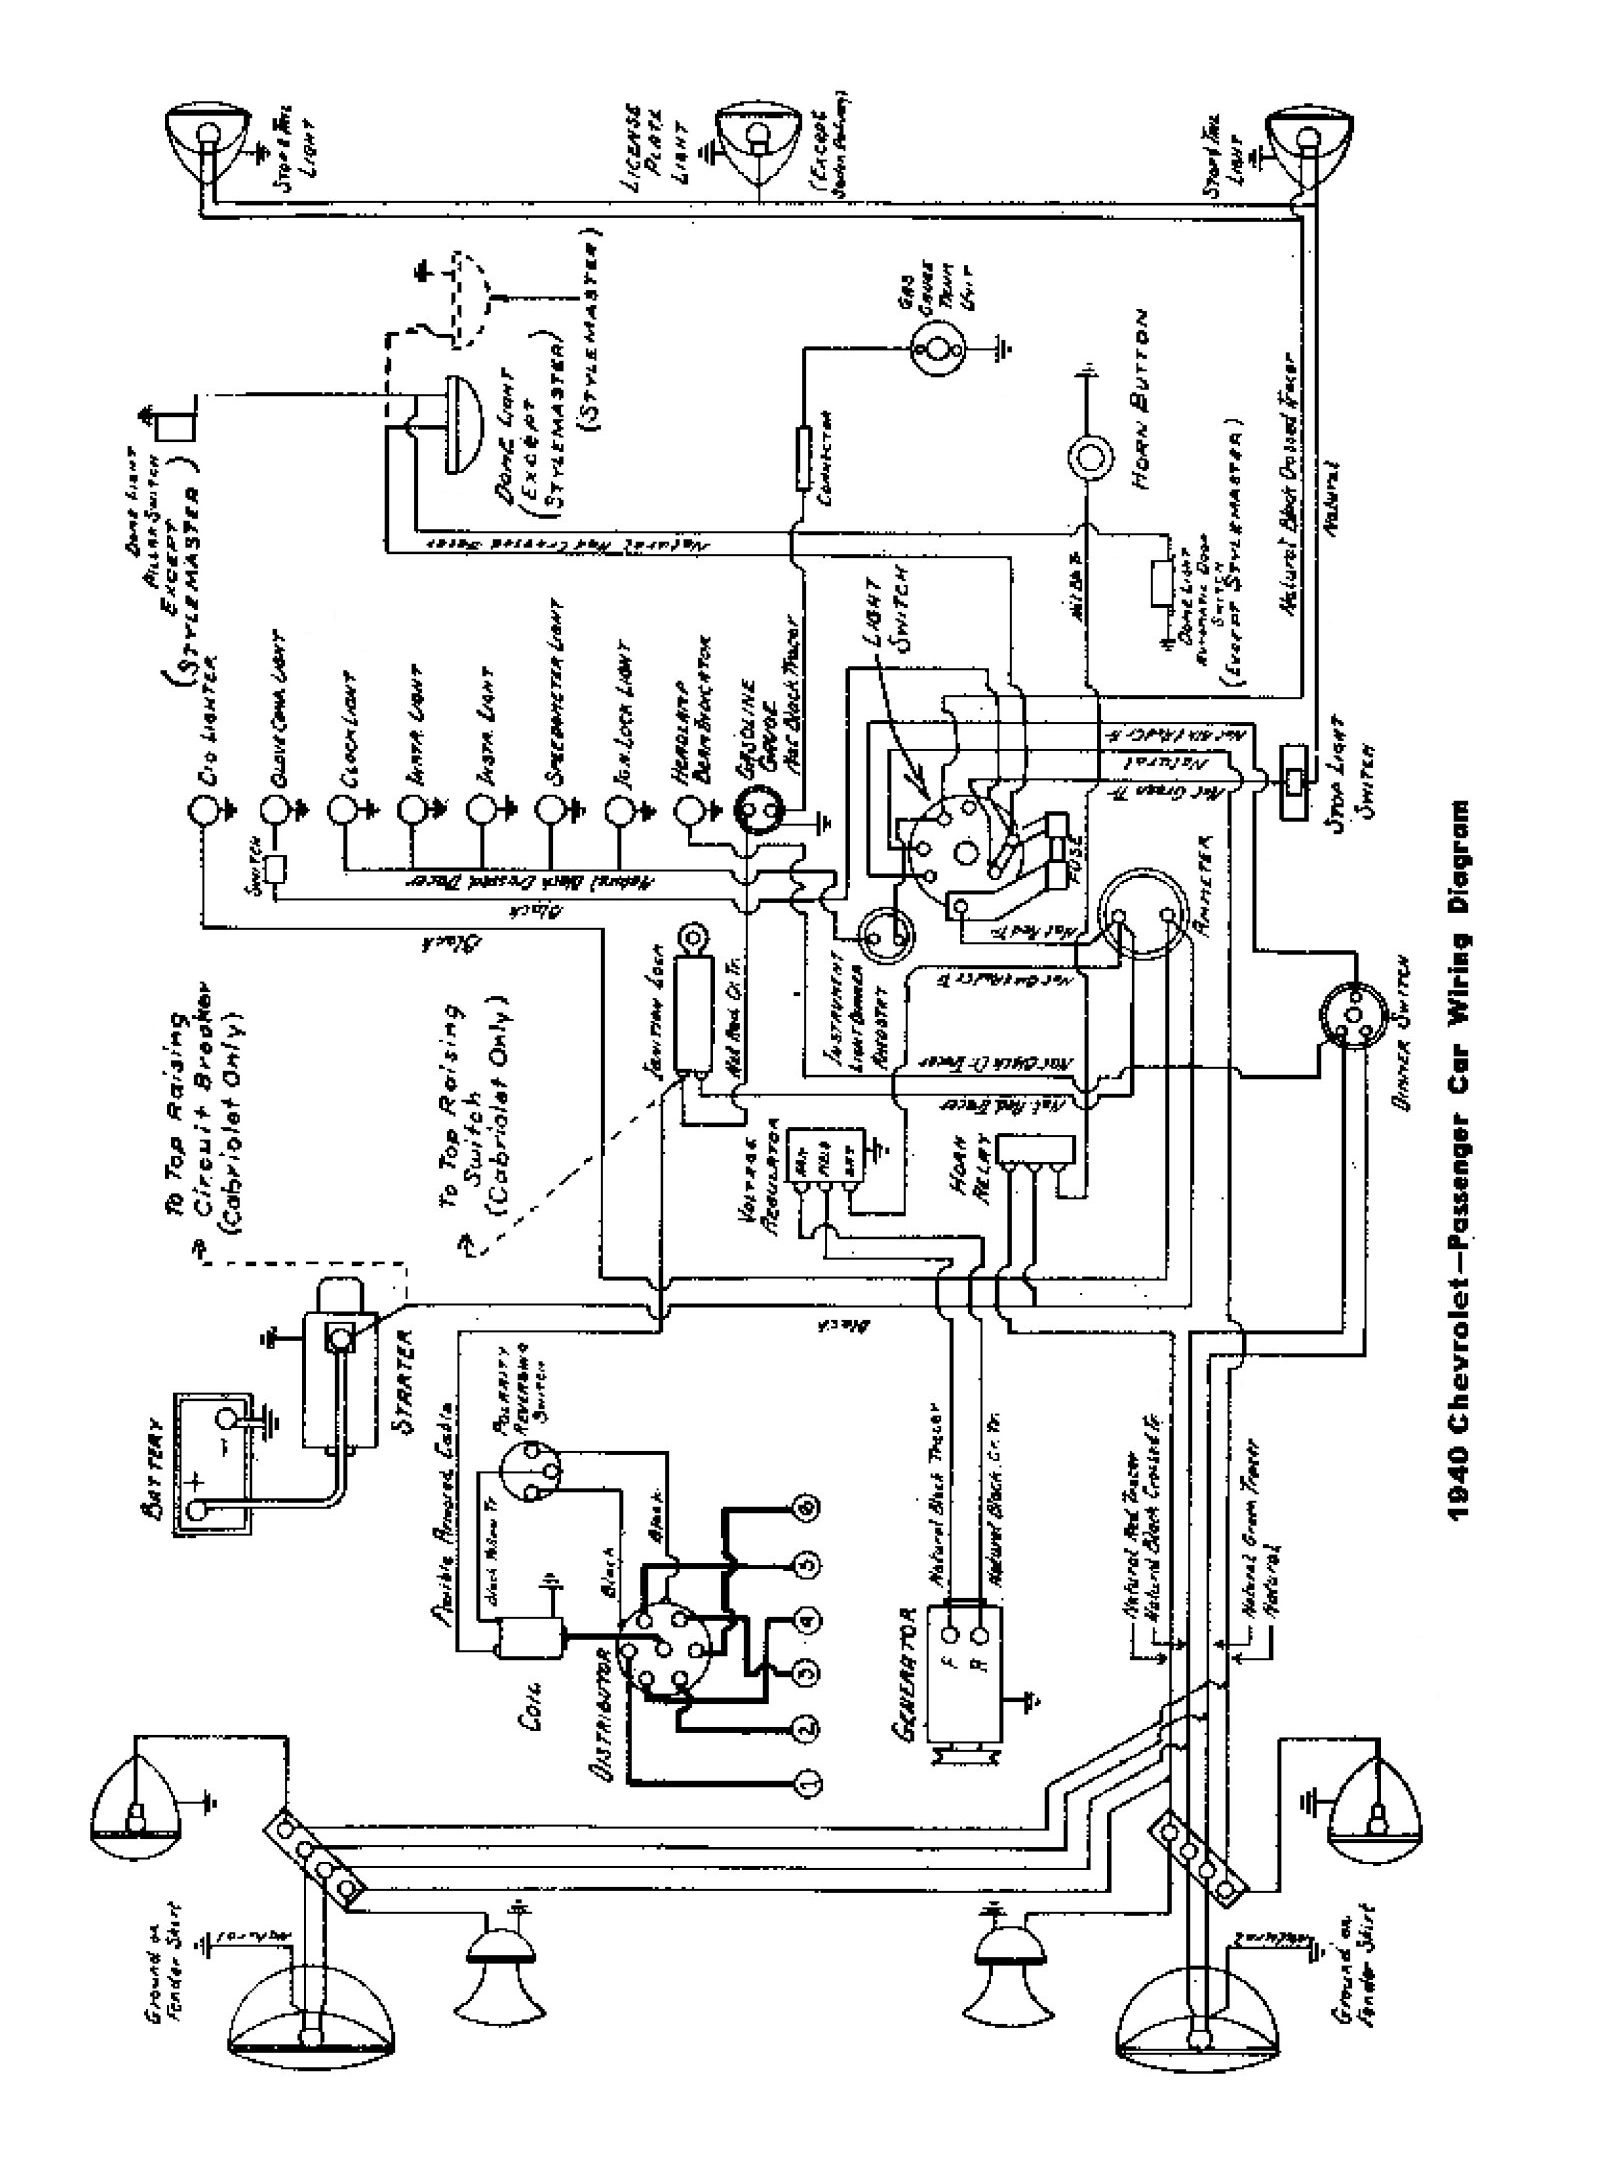 hight resolution of wiring diagram 1947 1953 also 1941 chevy special deluxe moreover ford truck wiring moreover 1947 chevy pickup truck moreover 1951 chevy